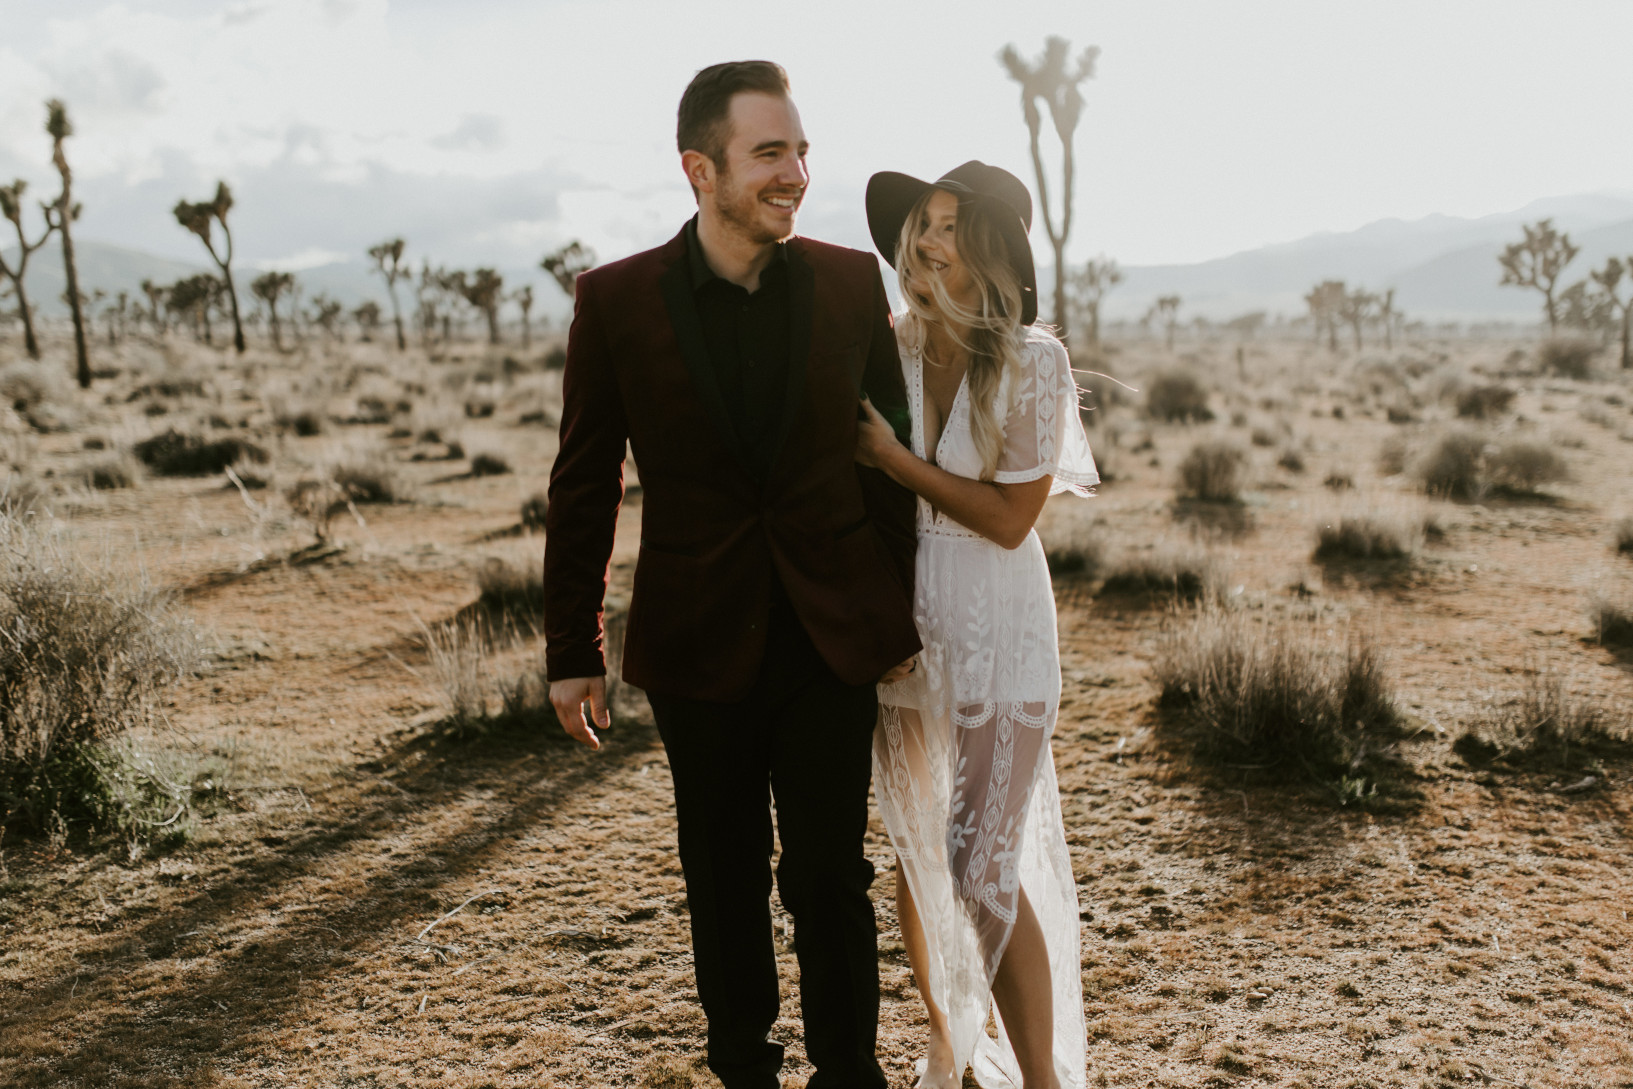 Jeremy and Alyssa stroll through Joshua Tree National Park. Elopement wedding photography at Joshua Tree National Park by Sienna Plus Josh.